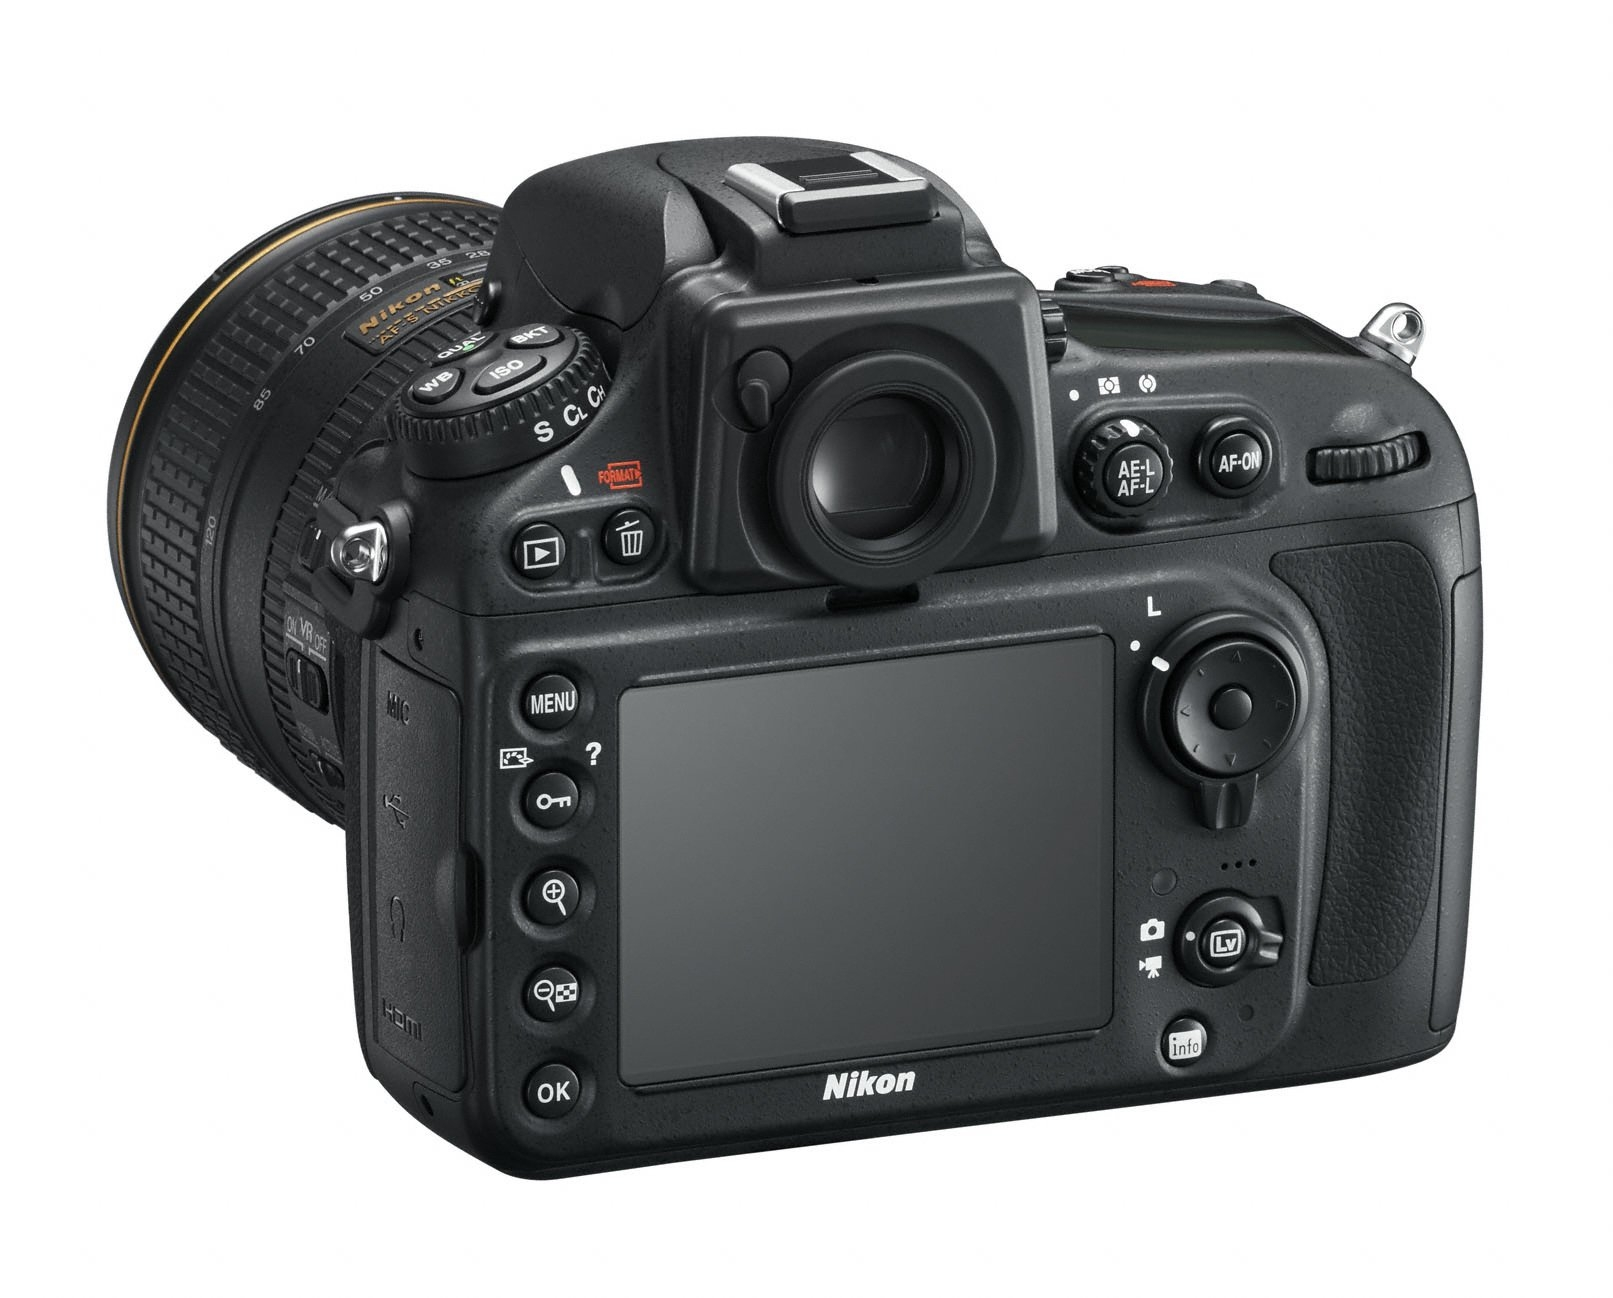 Camera Nikon D800 Dslr Camera expectations surpassed the 36 3 megapixel nikon d800 download low resolution high resolution